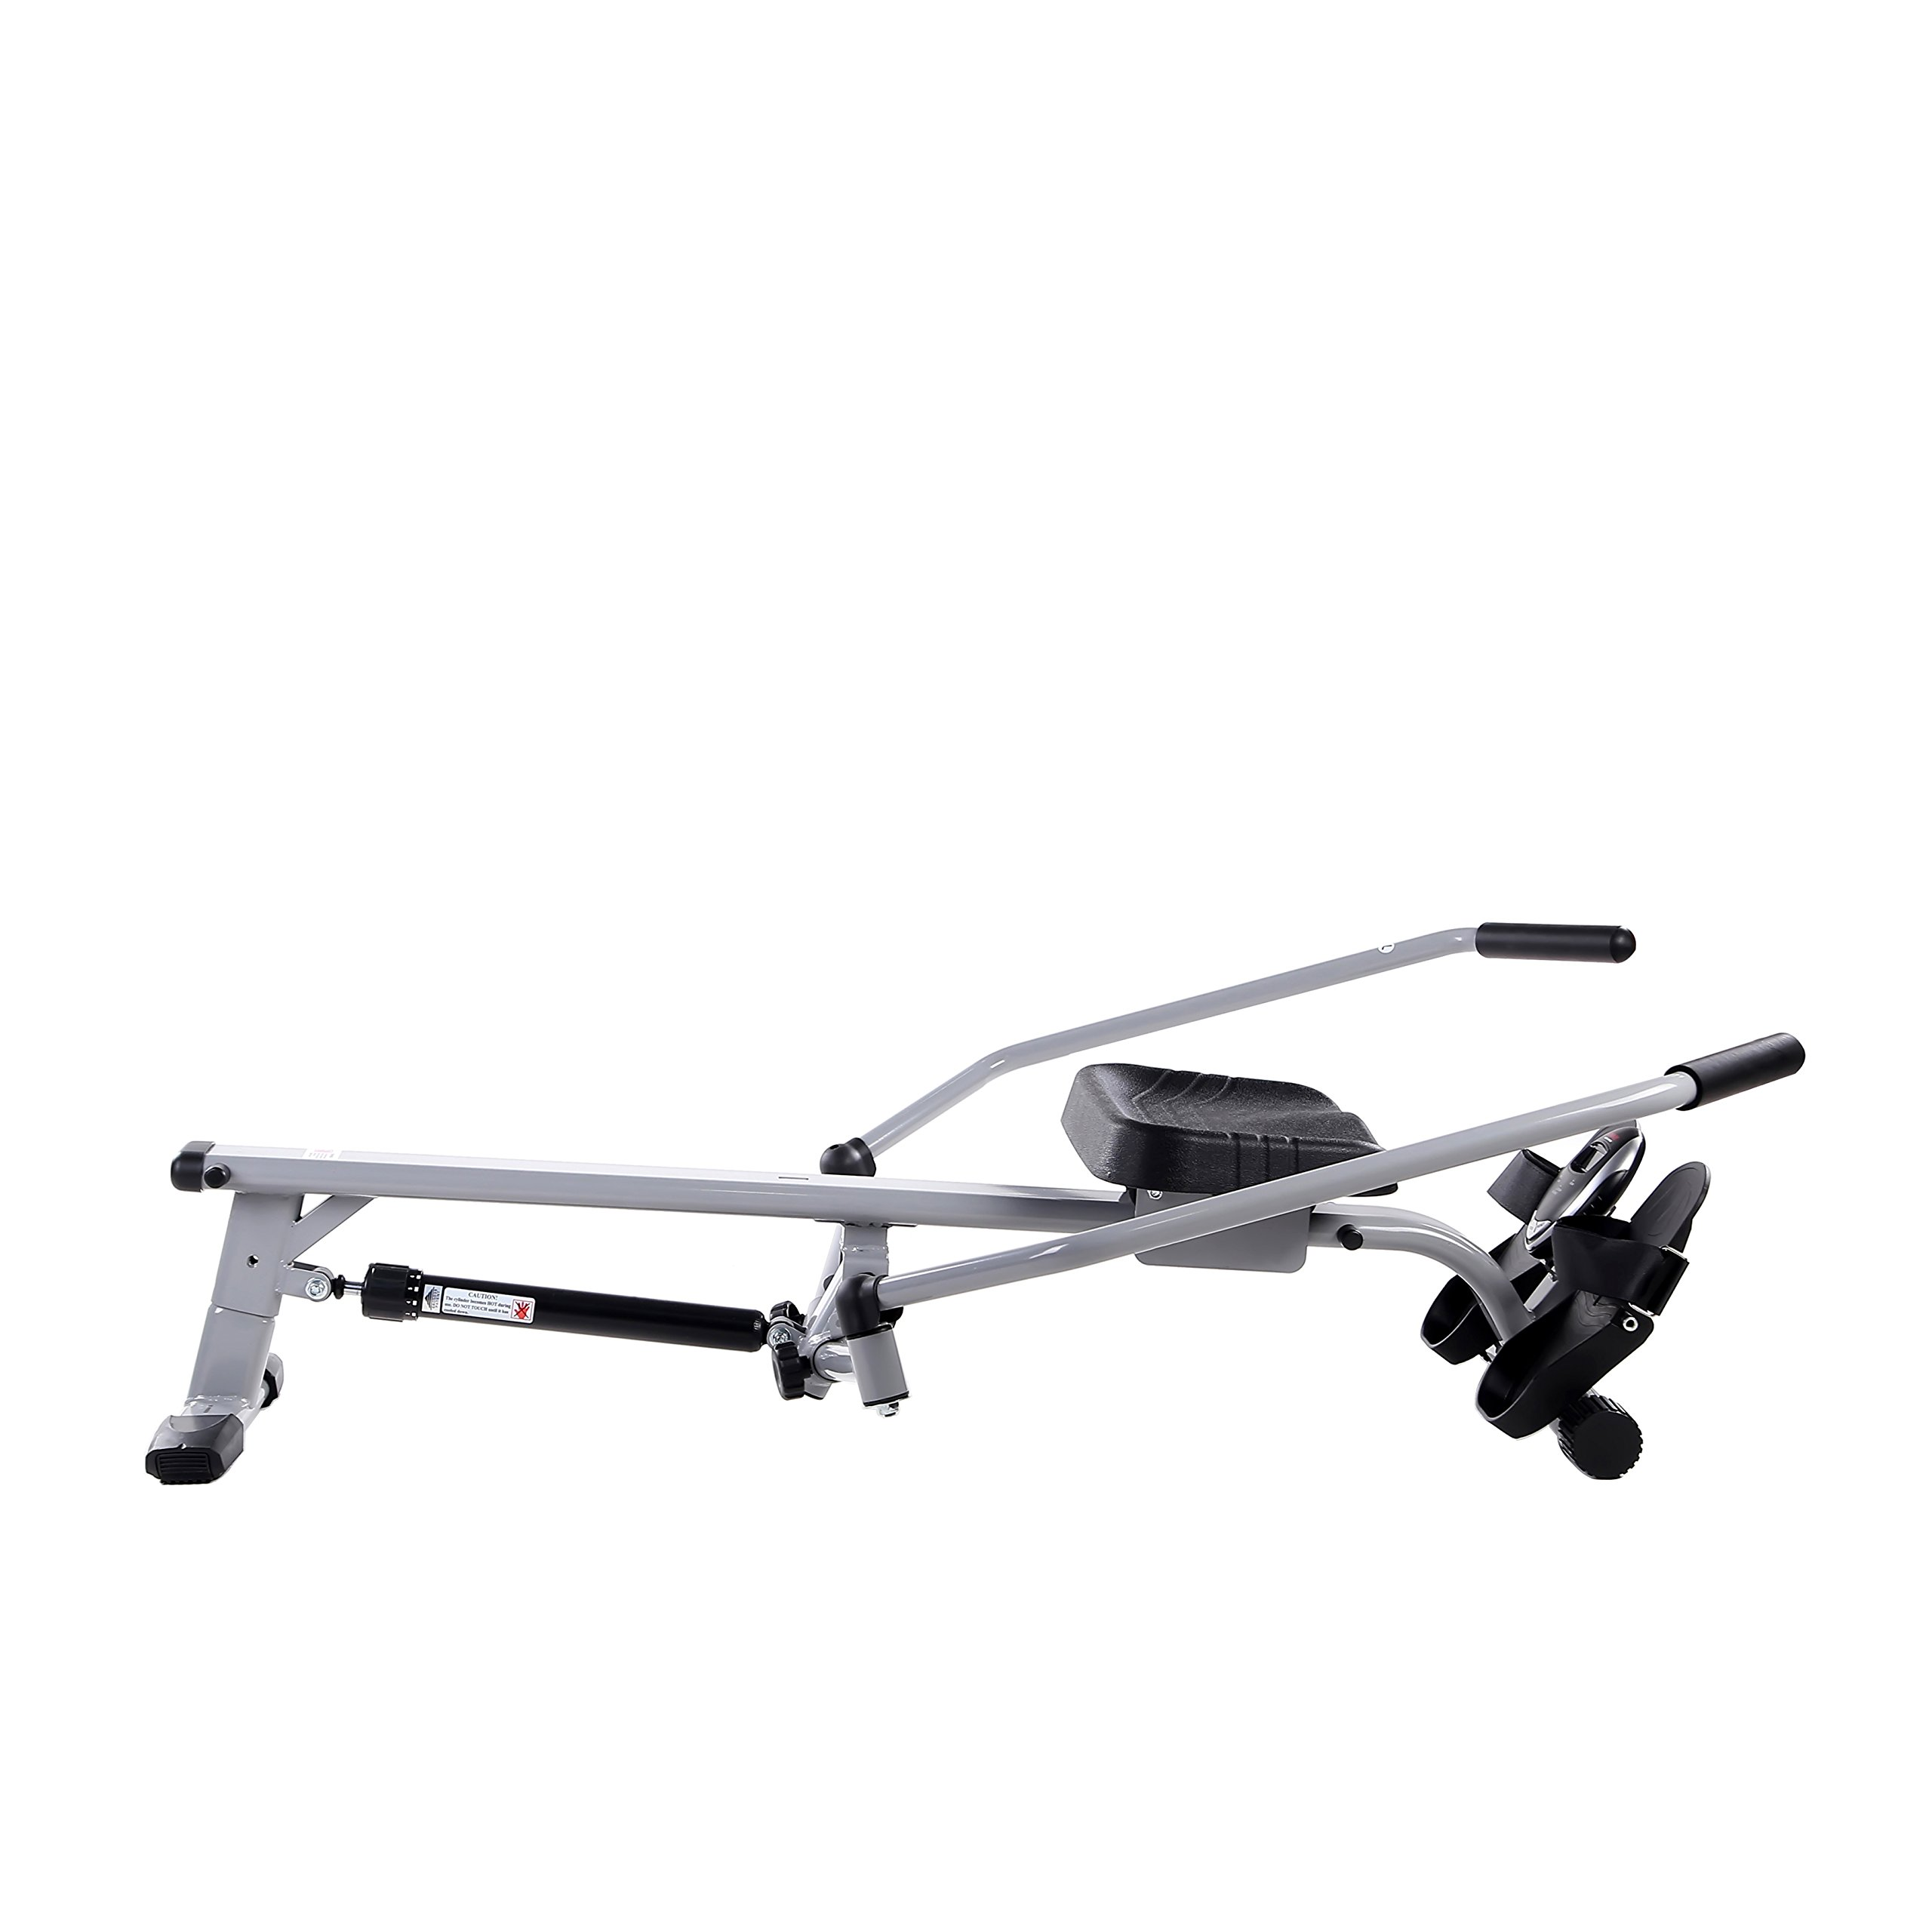 Sunny Health & Fitness SF-RW5639 Full Motion Rowing Machine Rower w/ 350 lb Weight Capacity and LCD Monitor by Sunny Health & Fitness (Image #11)